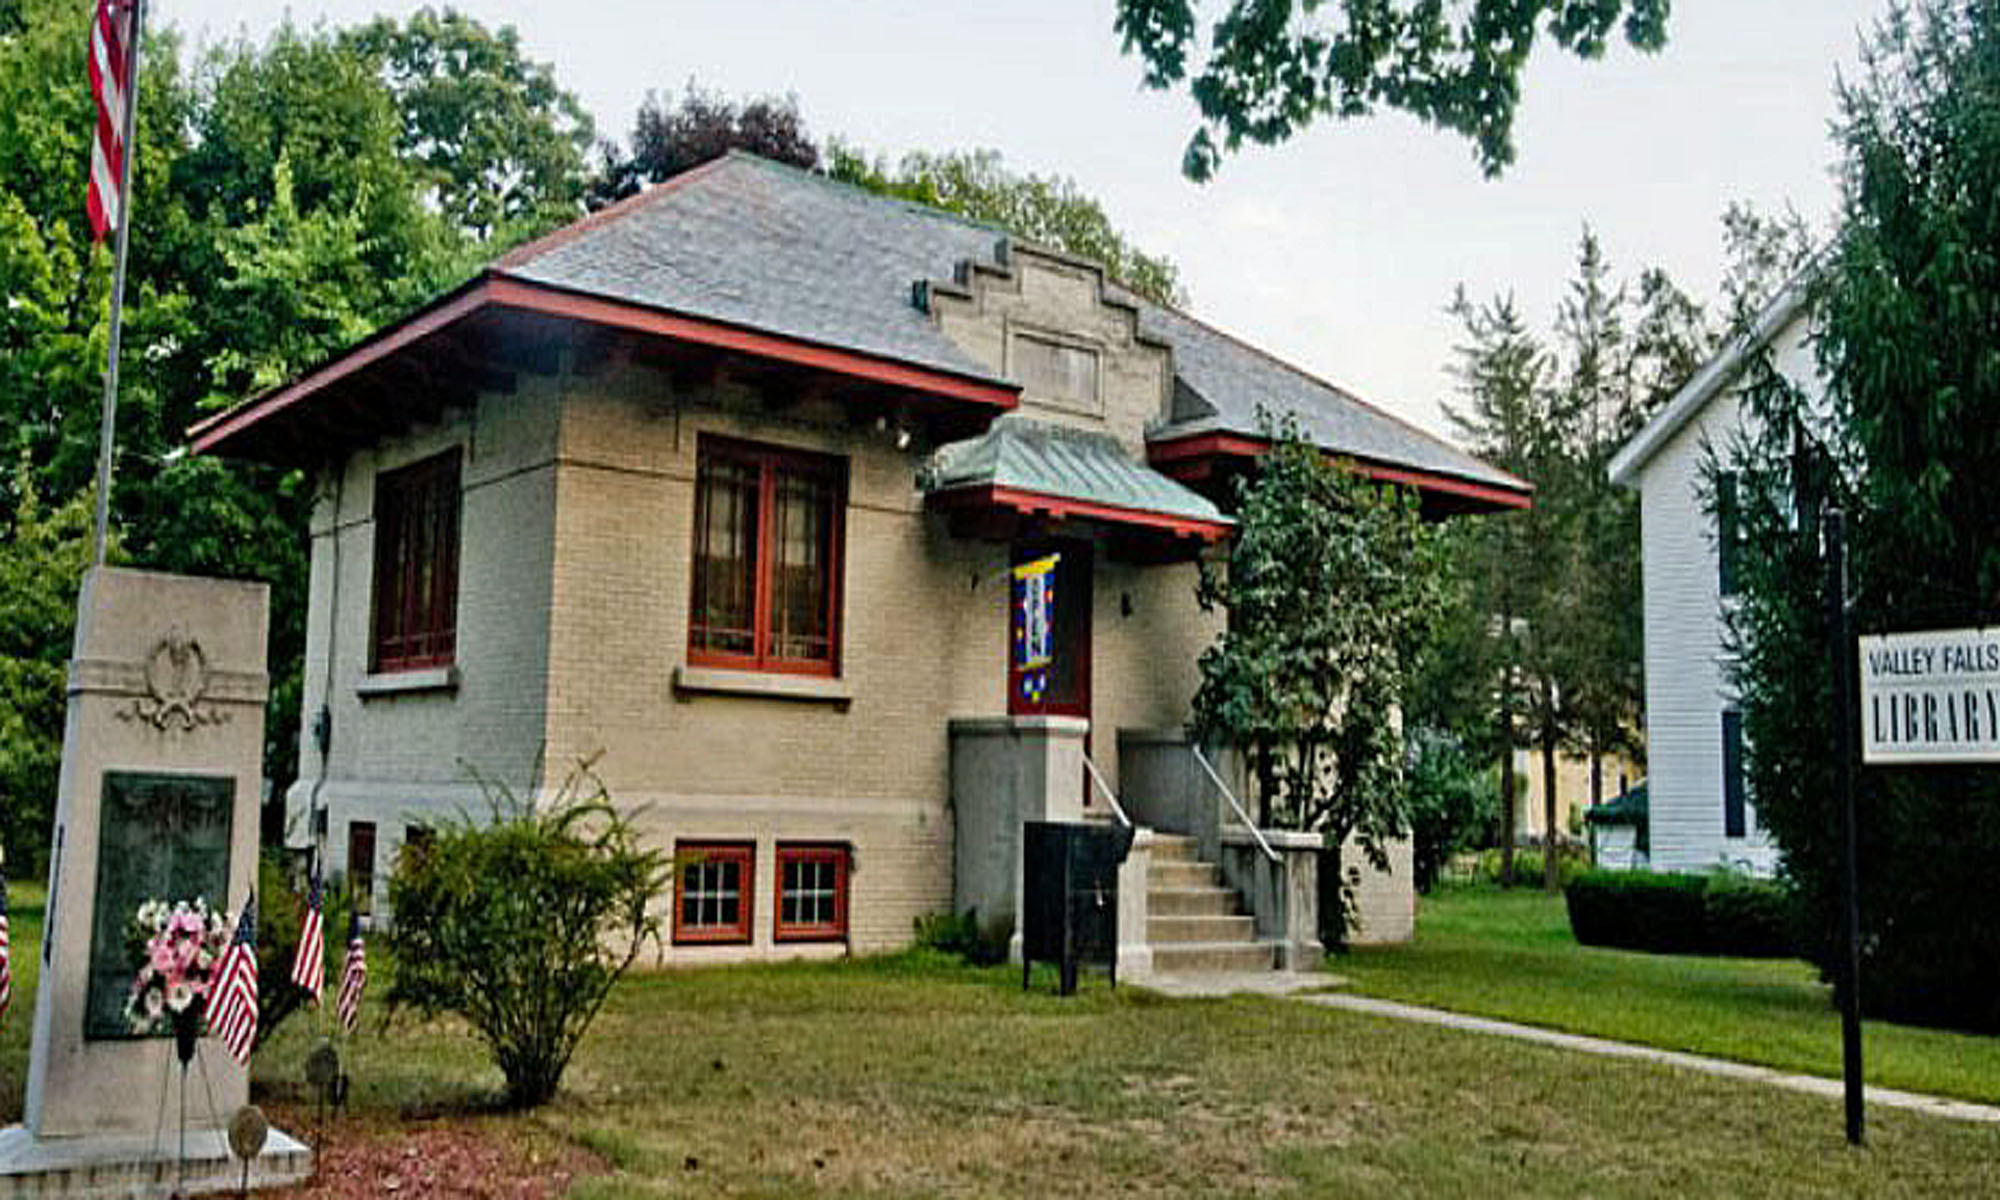 Valley Falls Free Library